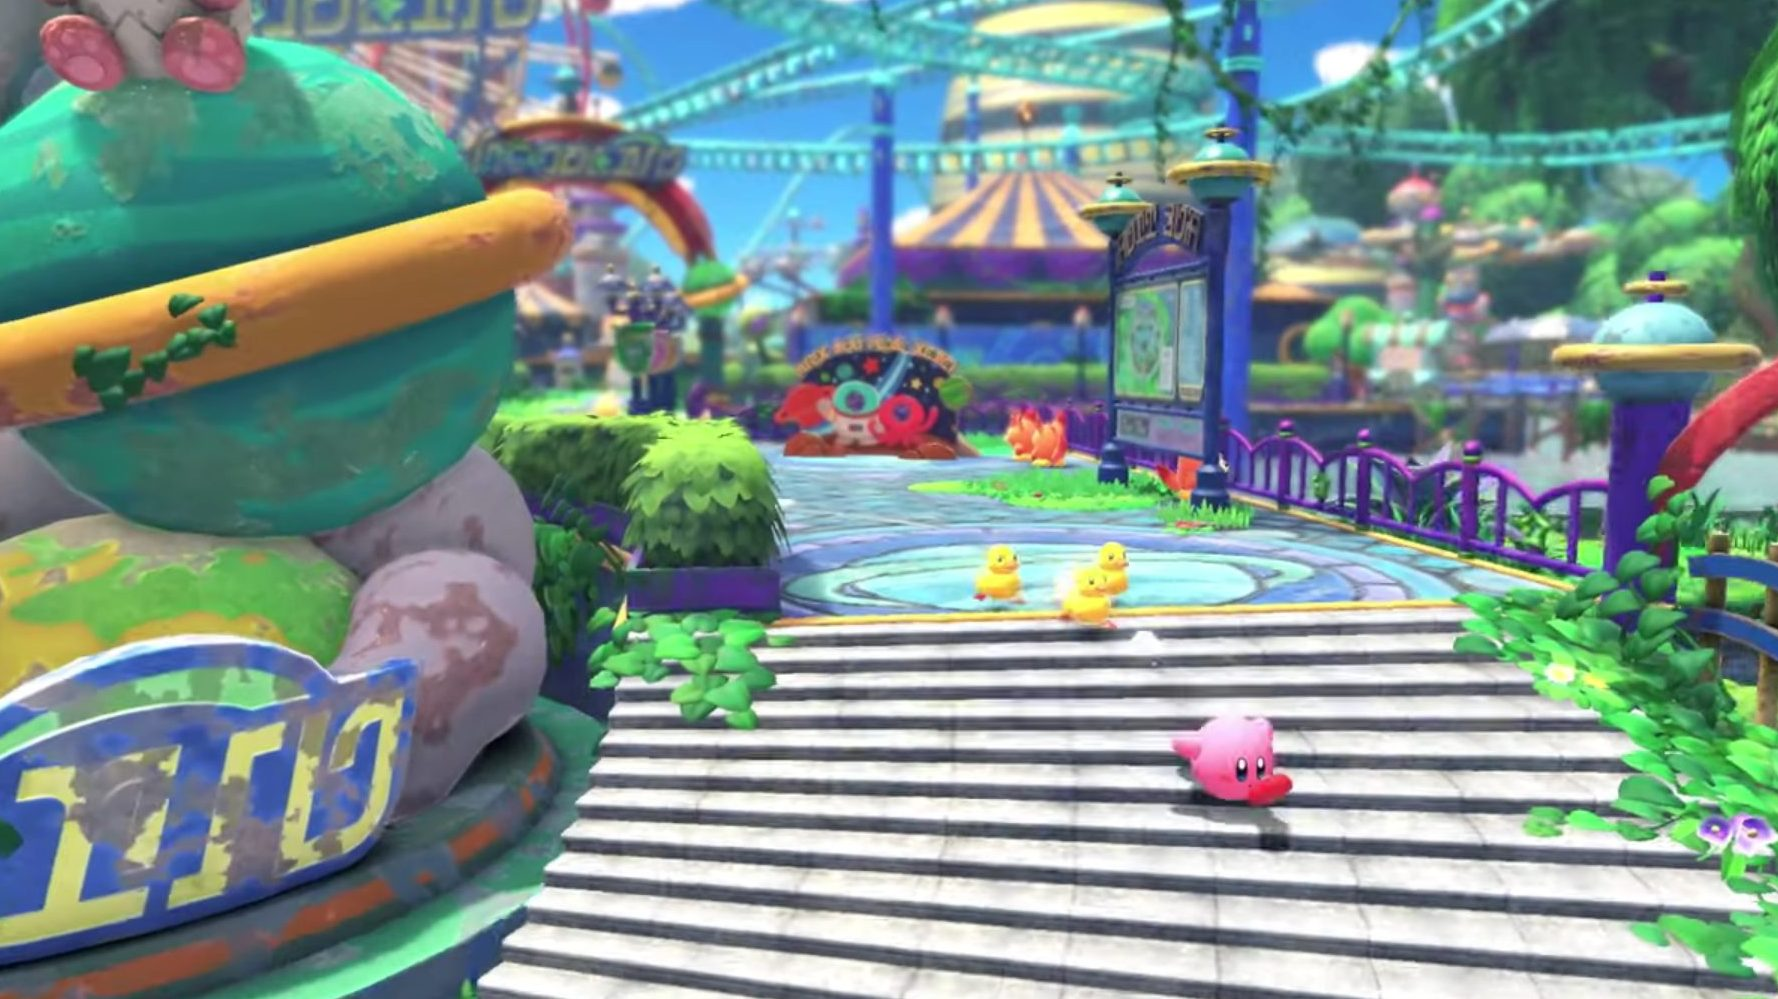 kirby and the forgotten land nintendo switch 2022